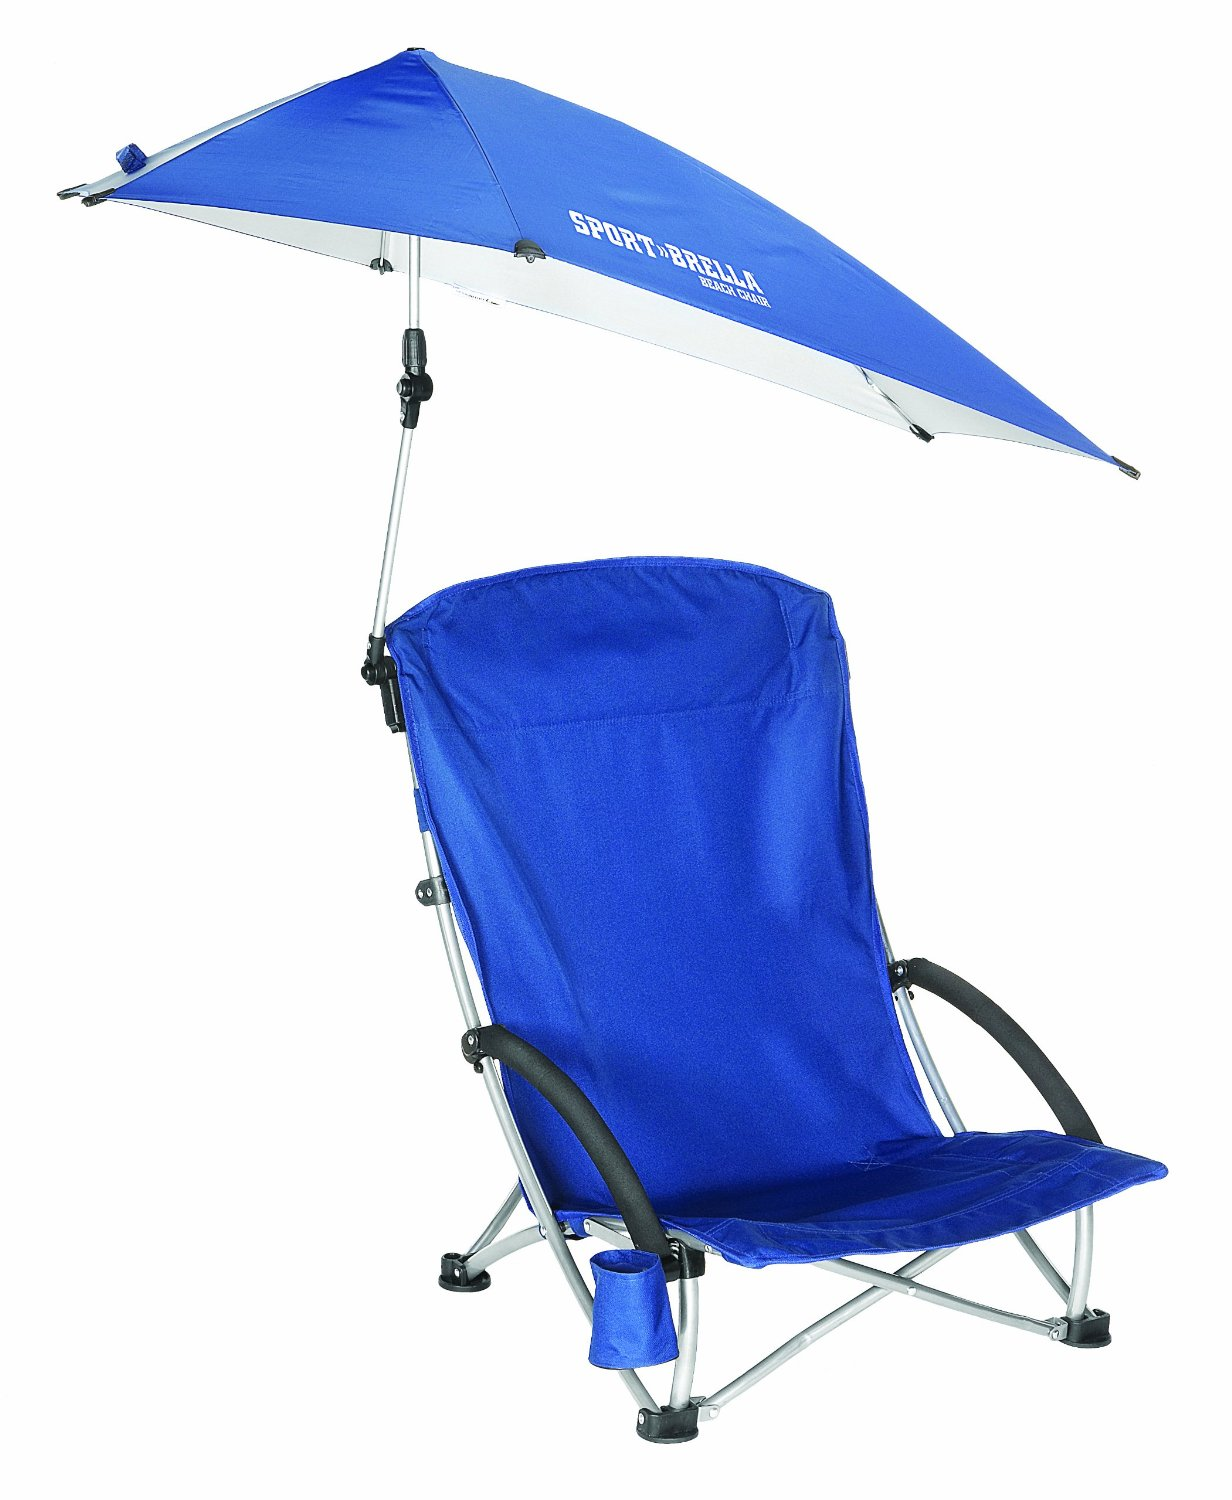 How To Select The Best Beach Chair And Umbrella Combo